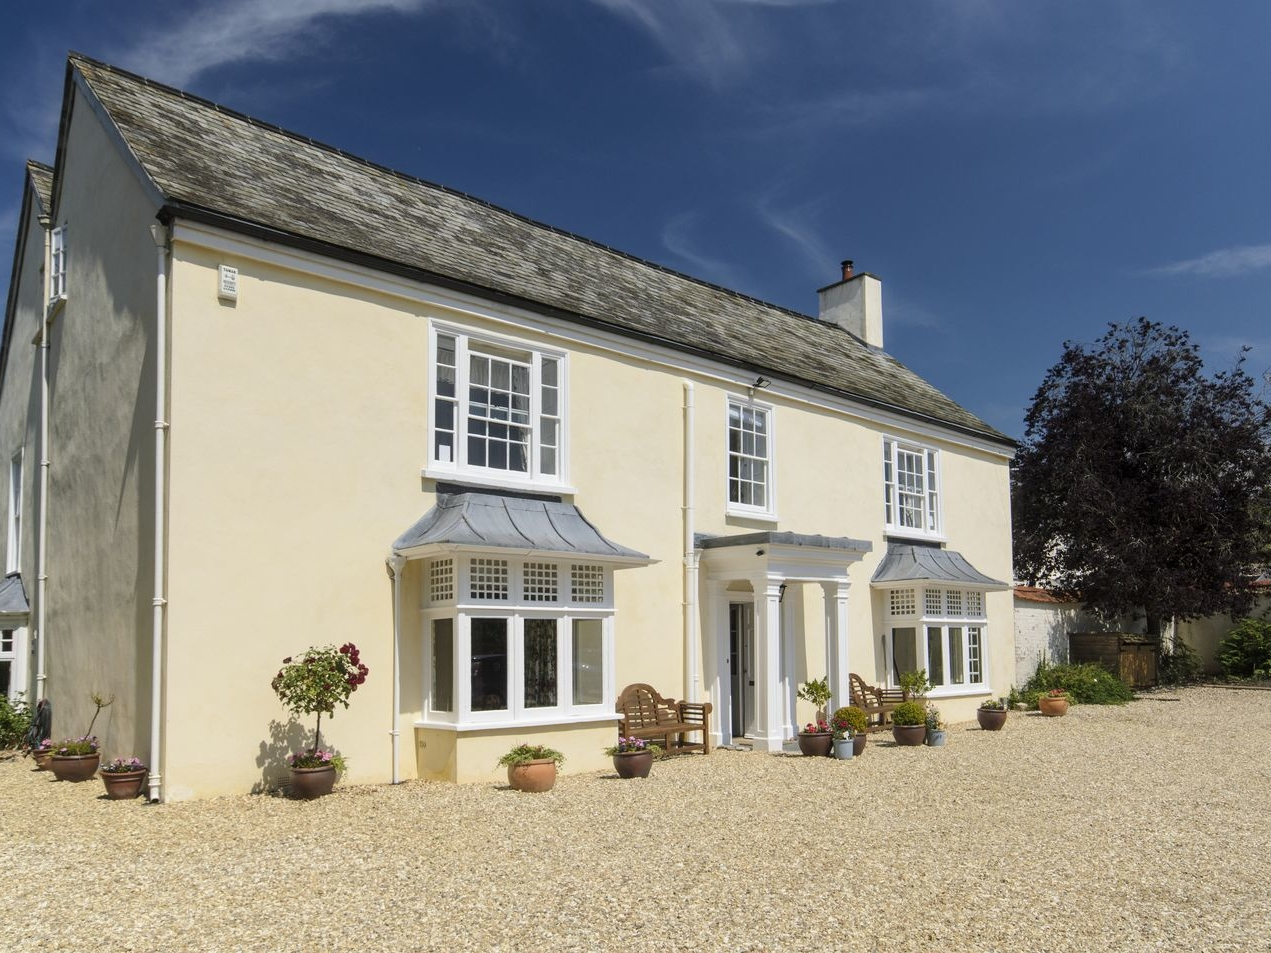 8 bedroom Cottage for rent in Honiton